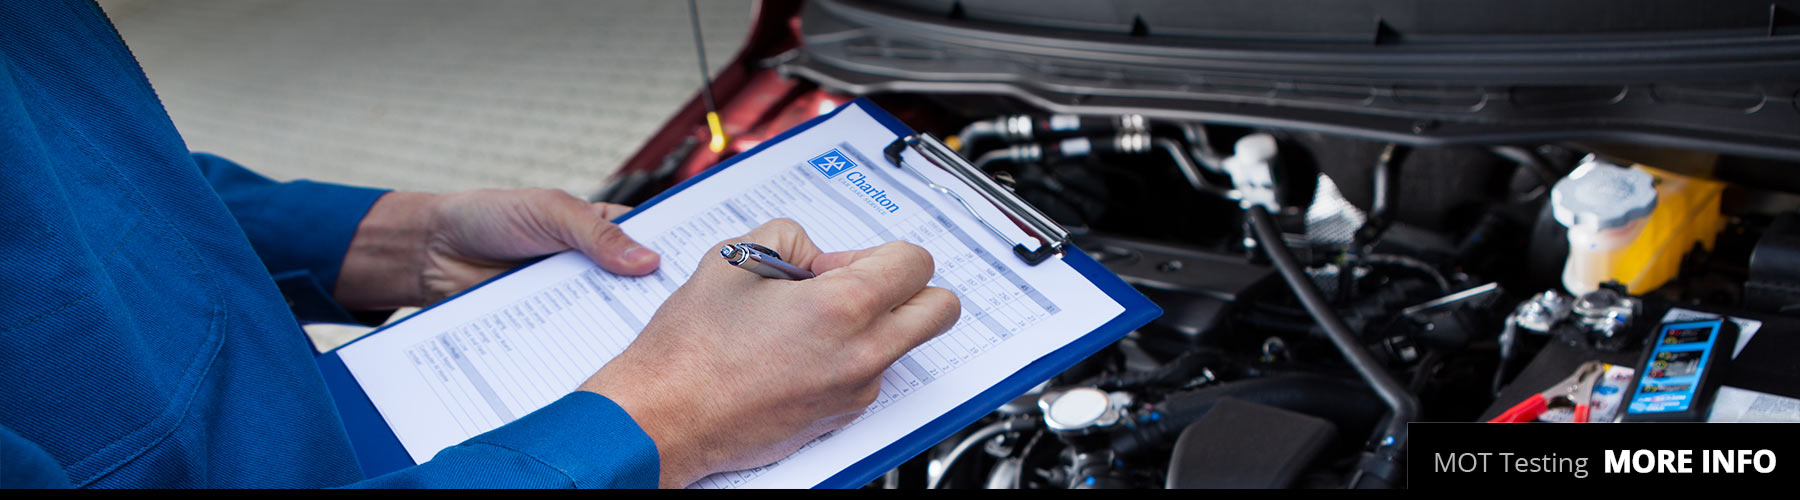 Man with clipboard checking off items to pass MOT Test